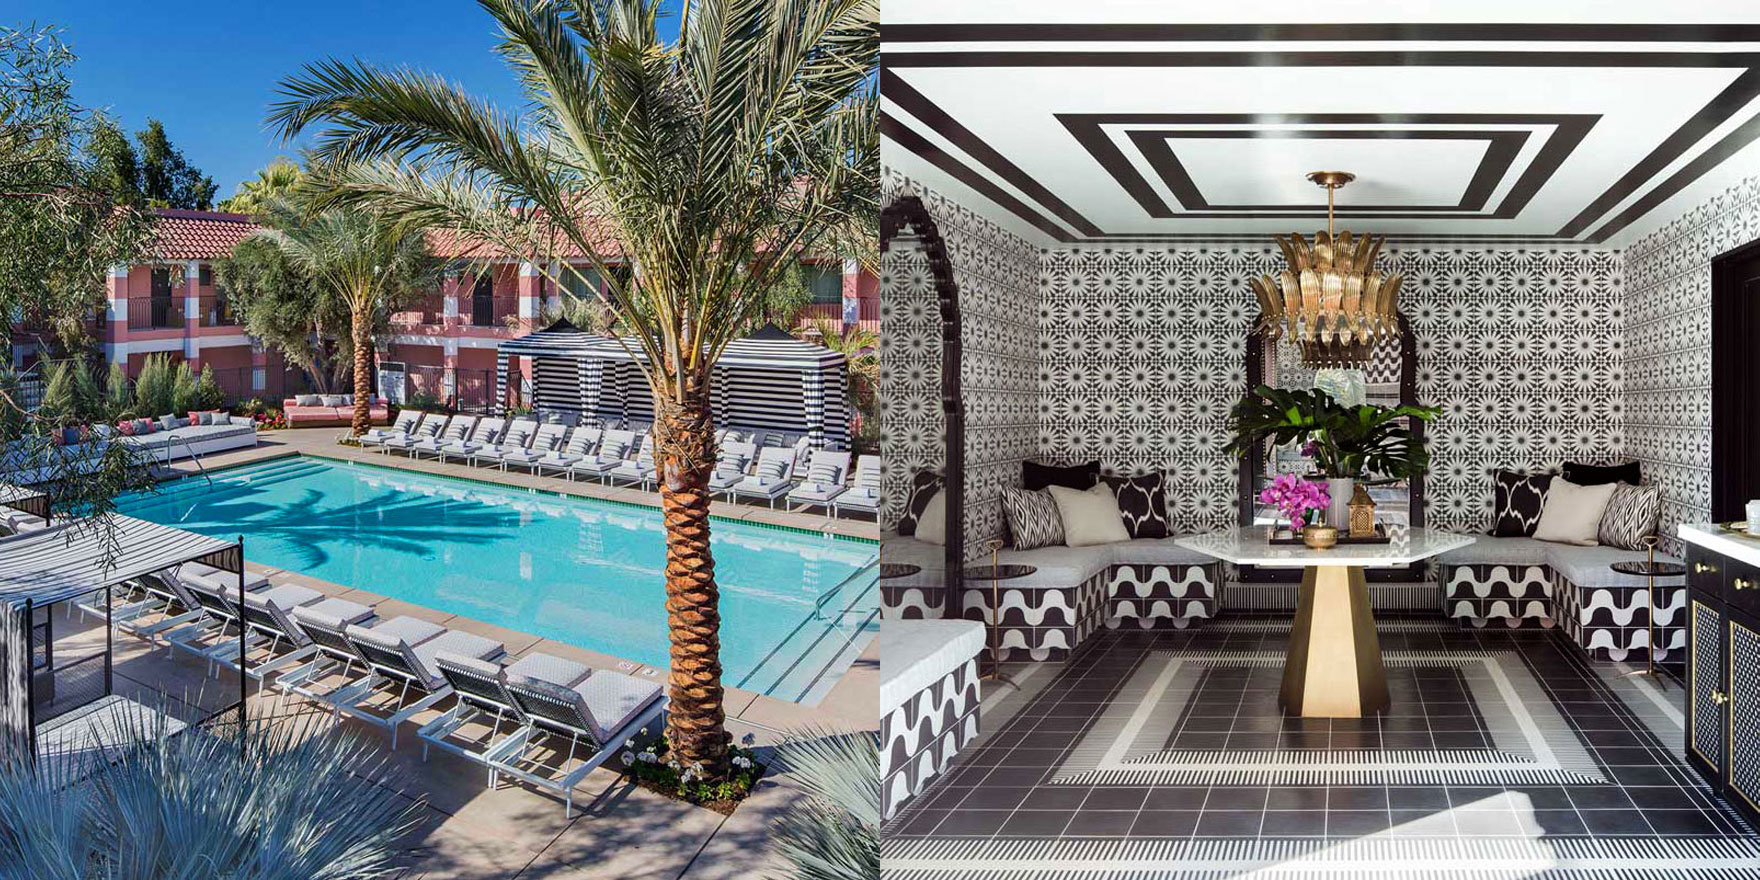 Sands Hotel & Spa – Boutique Hotel in Palm Springs